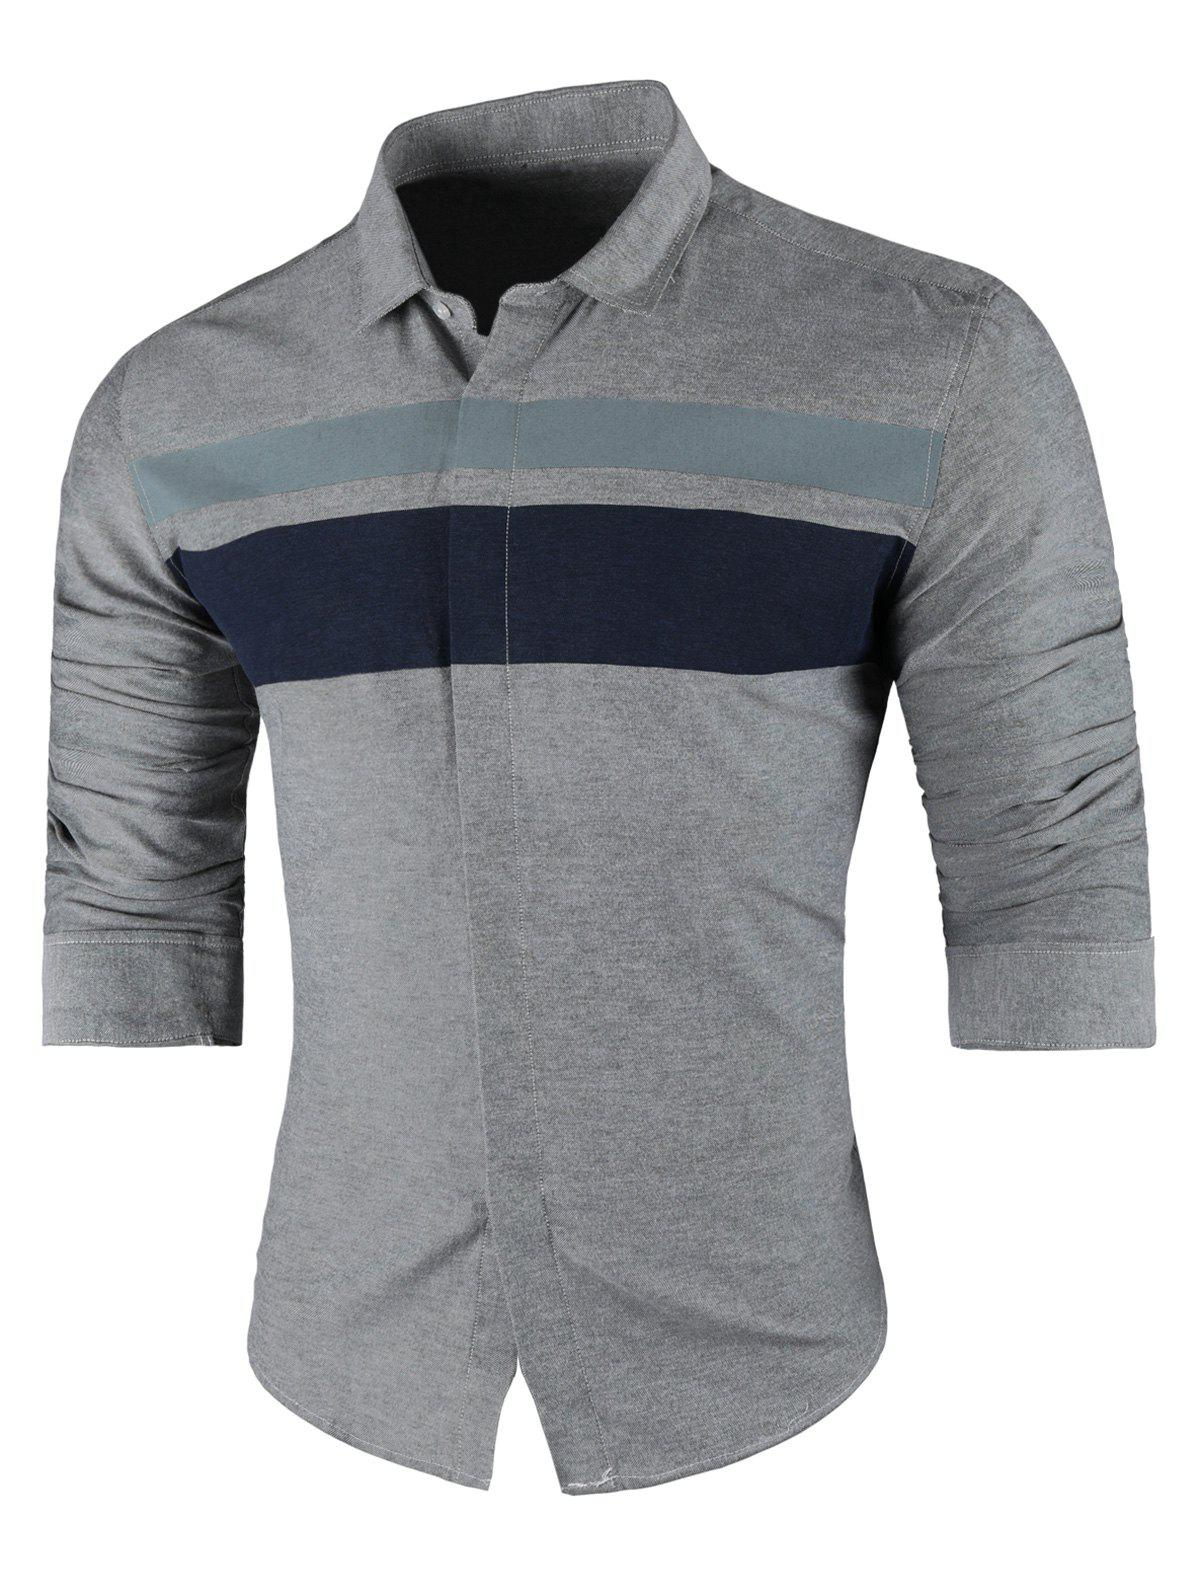 Wide Stripe Turndown Collar Long Sleeve Shirt - GRAY 4XL